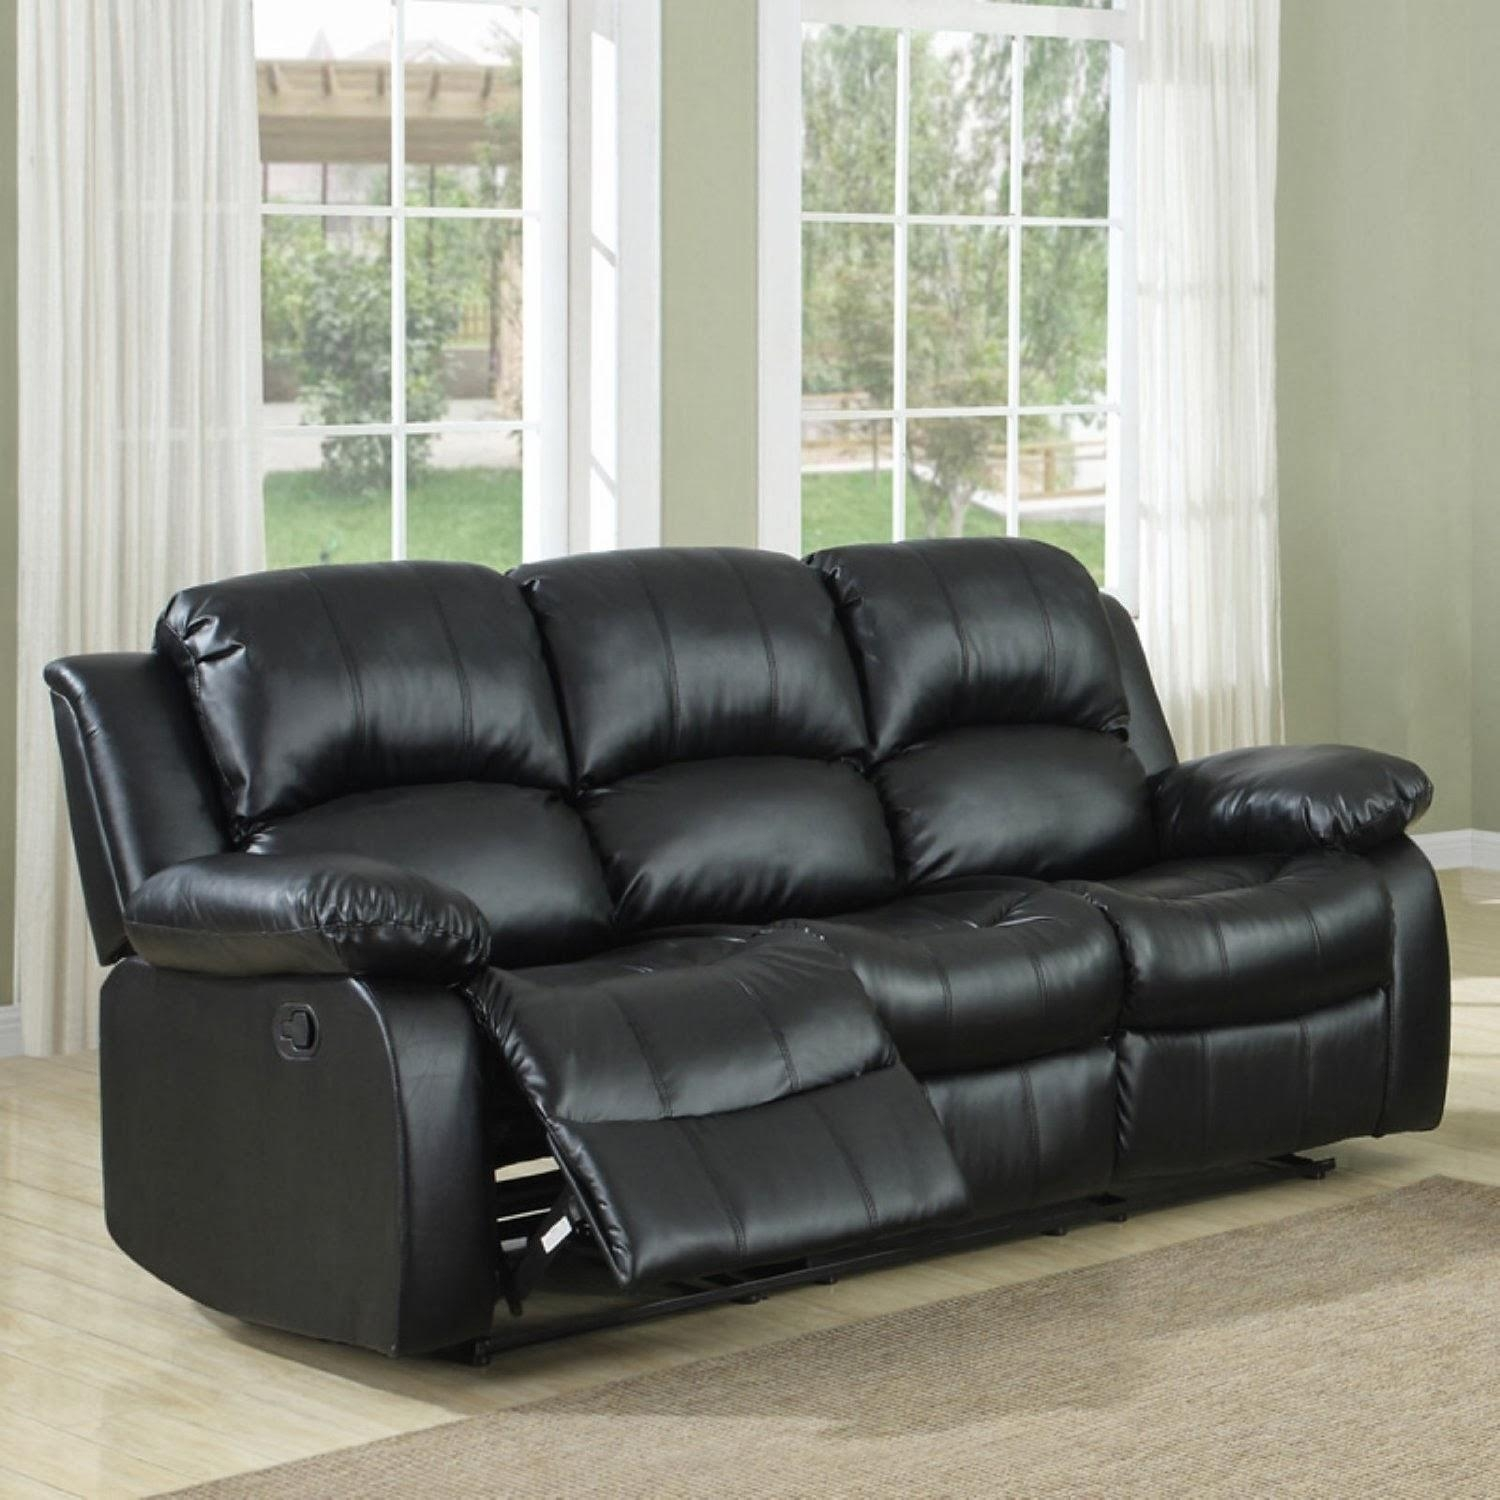 Furniture & Sofa: Perfect Small Spaces Configurable Sectional Sofa Throughout Short Sectional Sofas (Image 6 of 20)